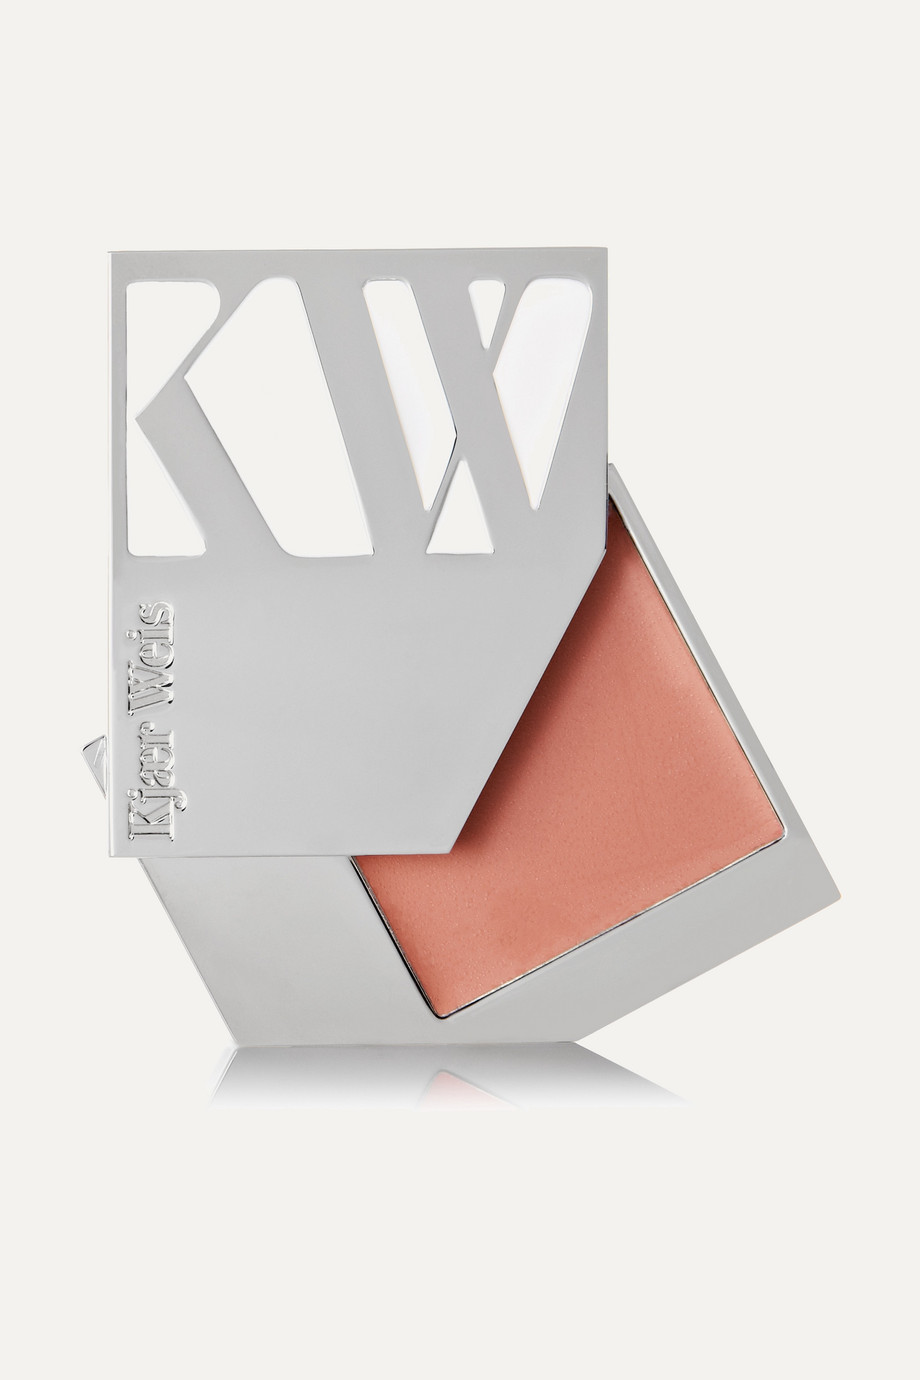 Cream Blush - Desired Glow, by Kjaer Weis